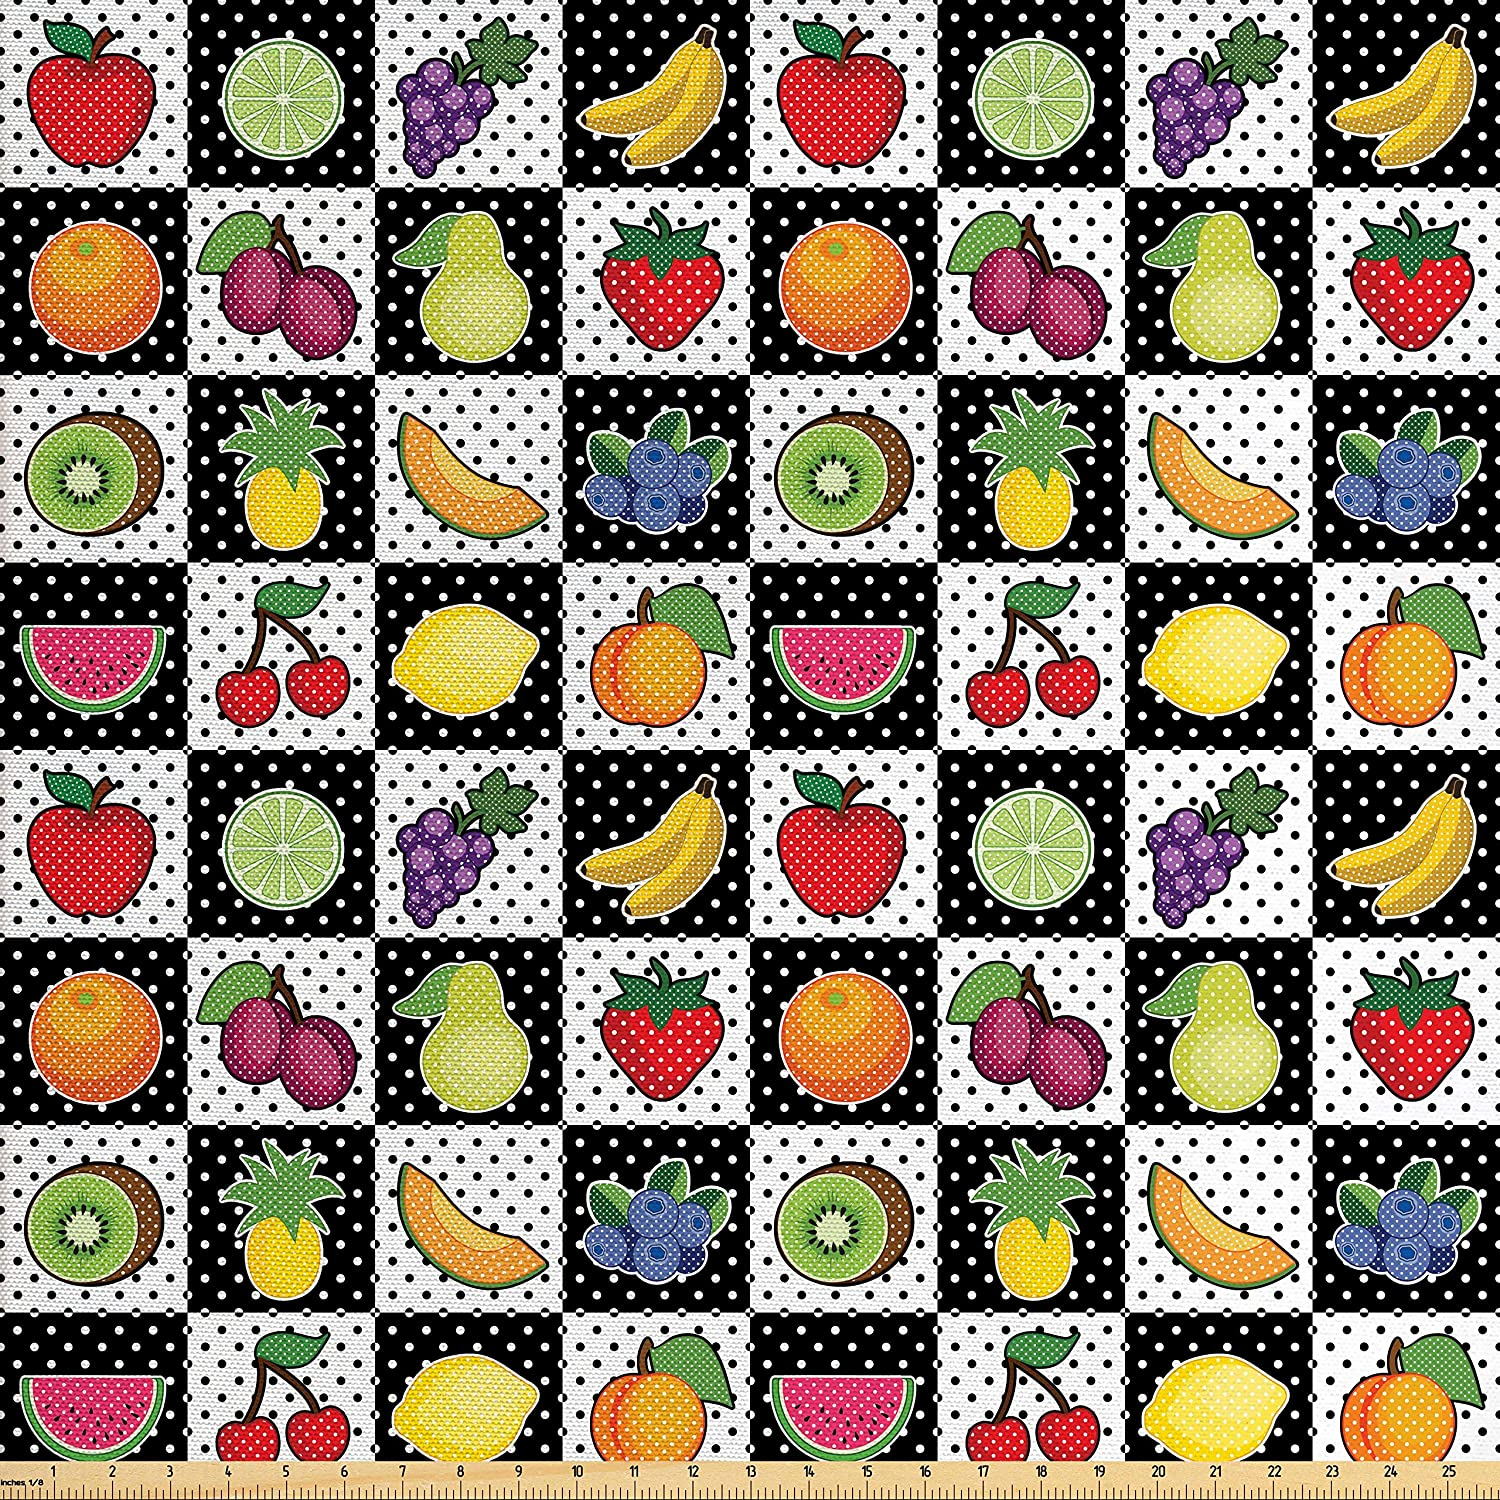 Ambesonne Black and White Fabric by The Yard, Kitchen Fruits and Vegetables Nature with Dots Chess Squares Art Design, Decorative Fabric for Upholstery and Home Accents, Multicolor